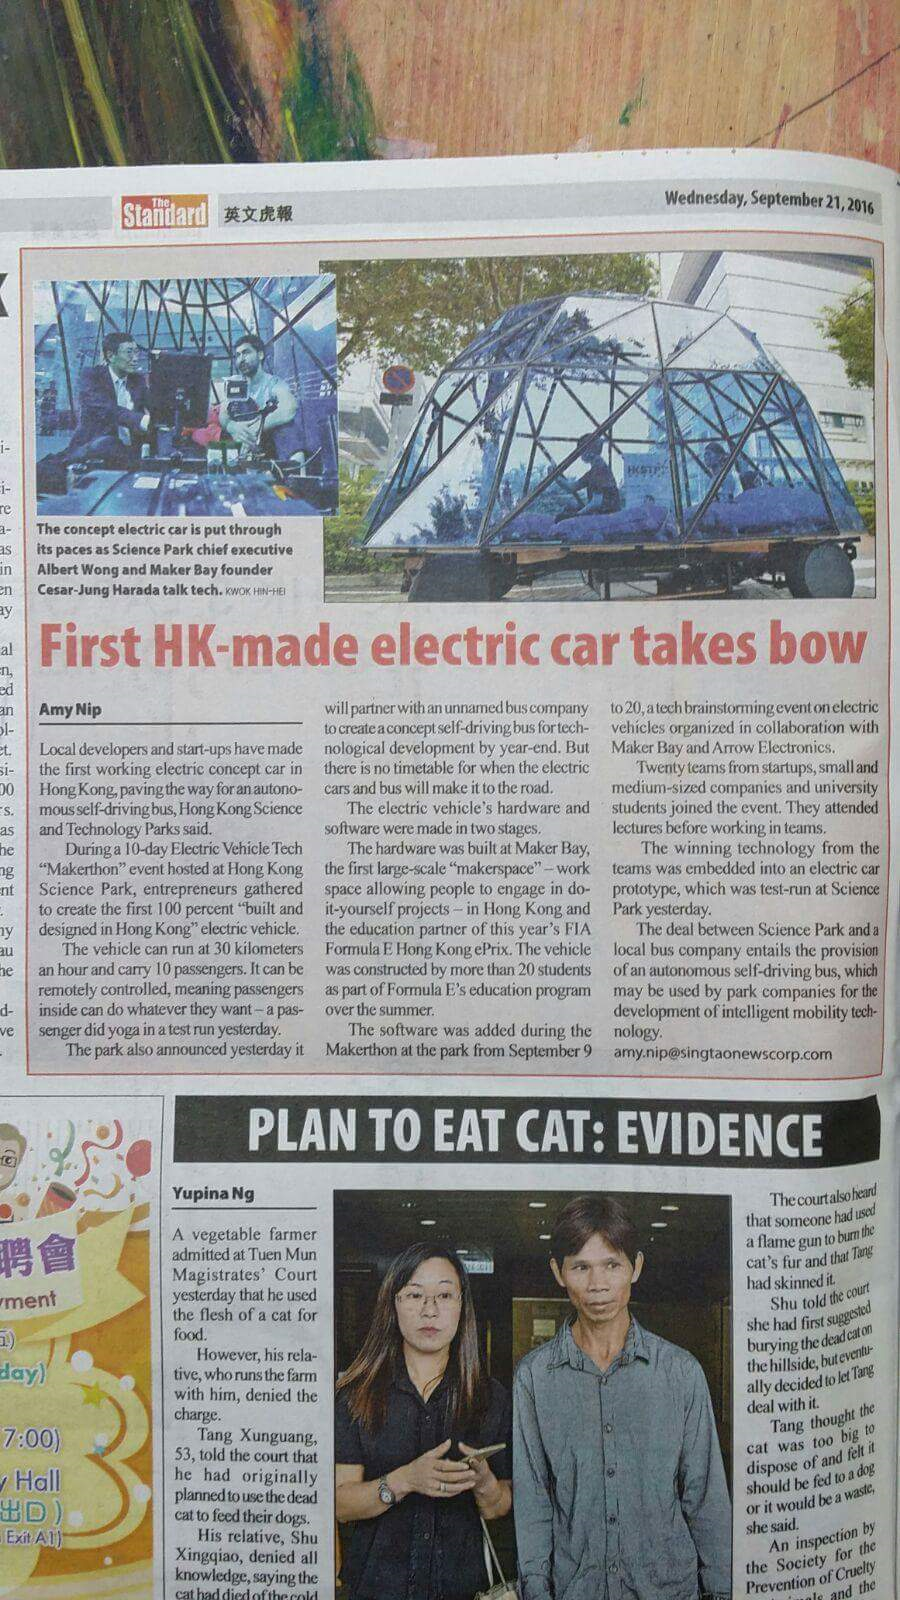 First HK-made electric car